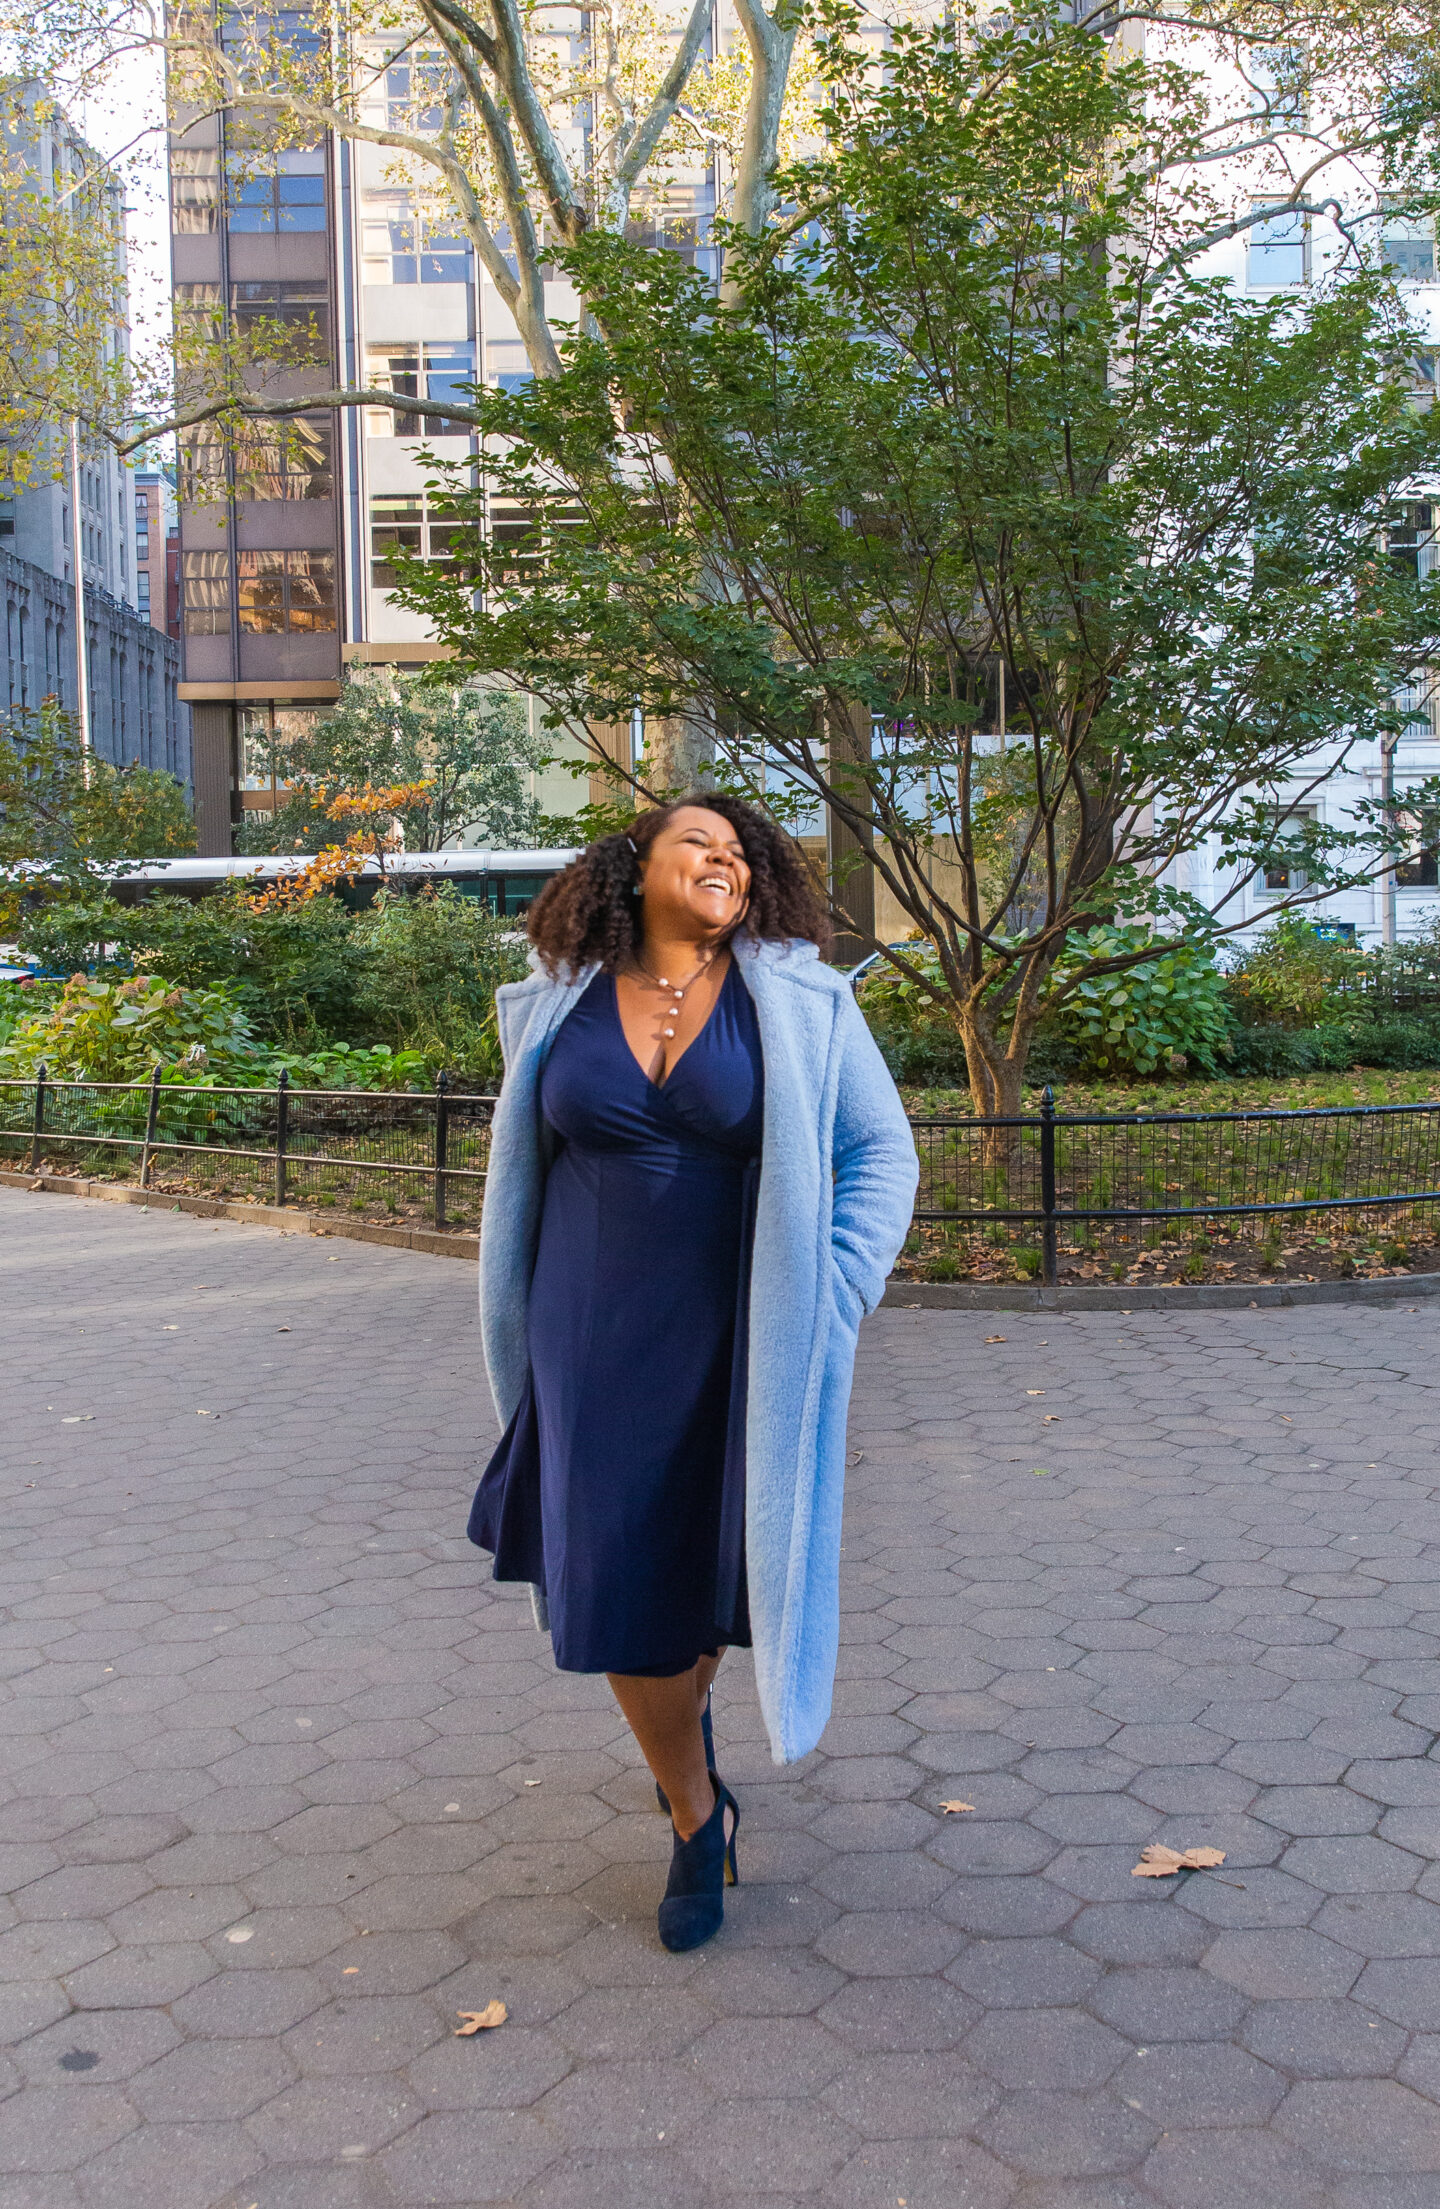 patranila walks in madison square park wearing blue dress and coat